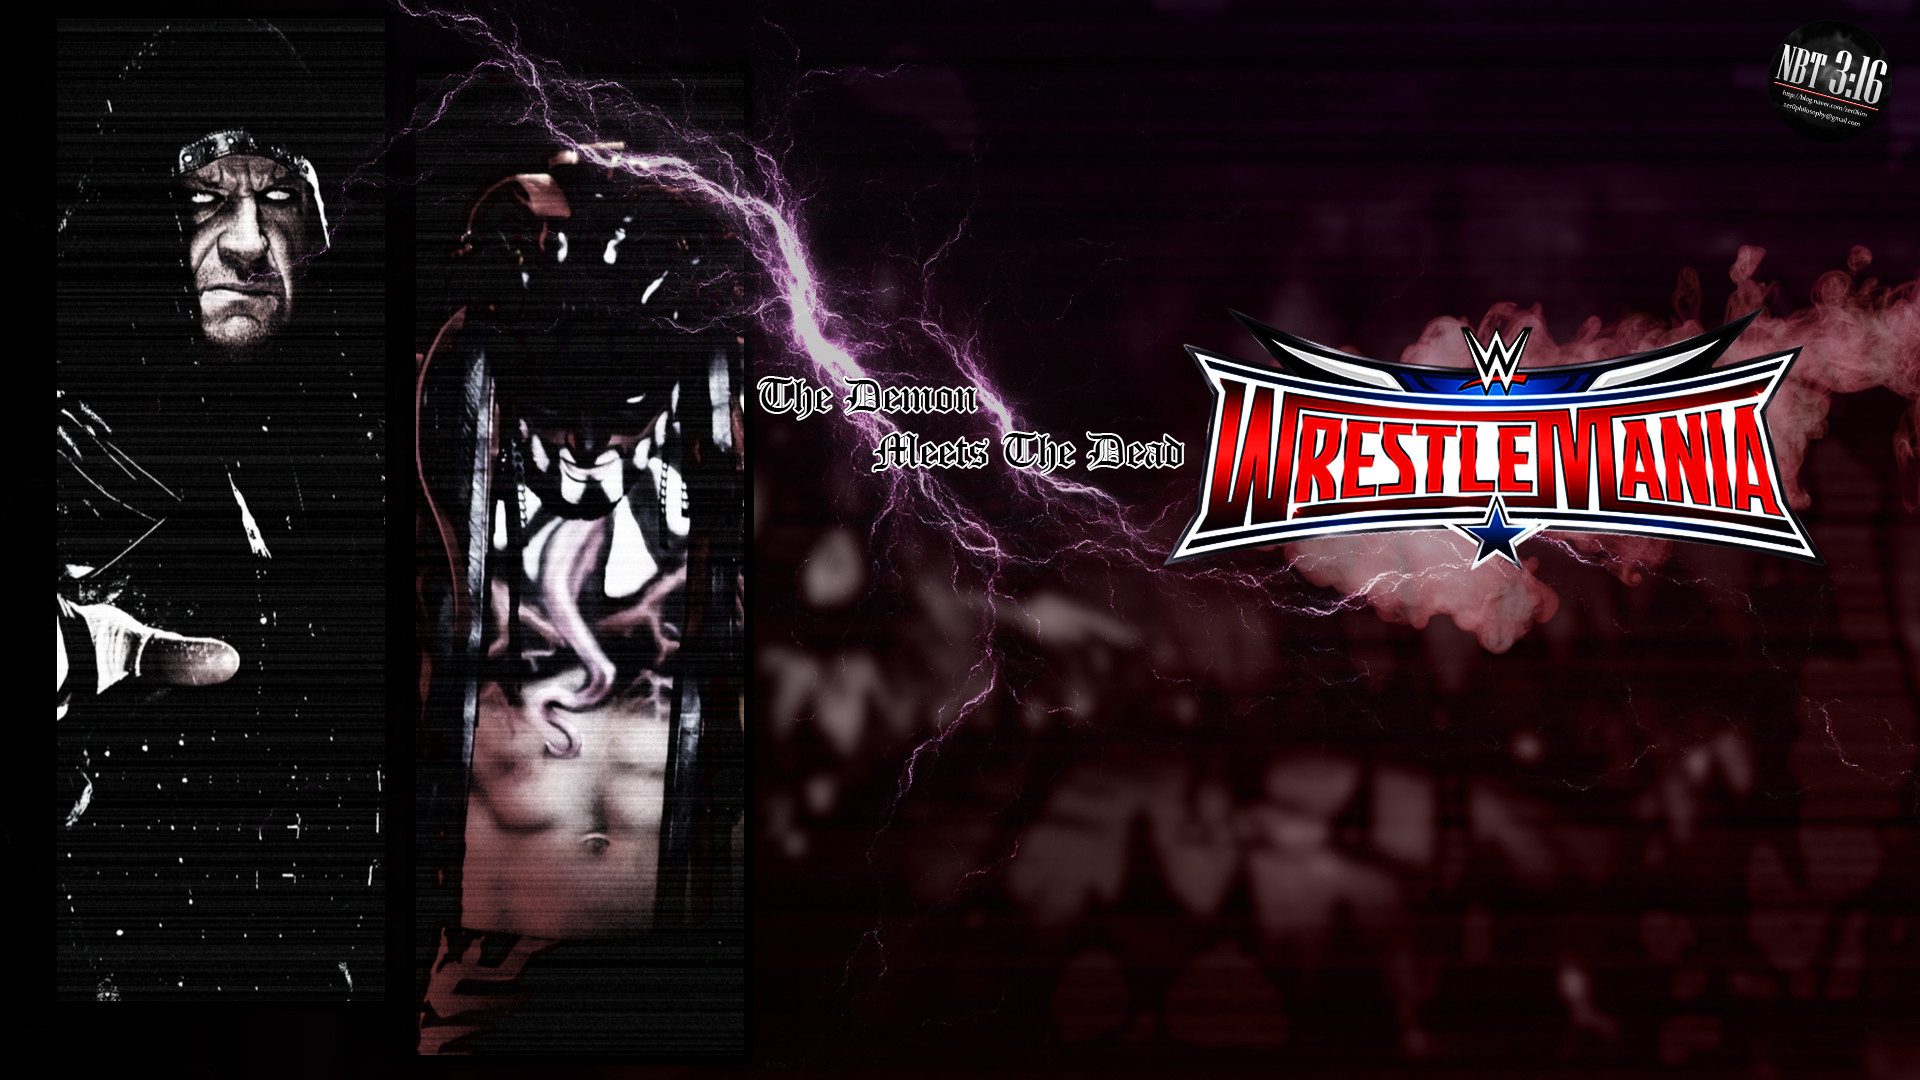 WWE Wrestlemania 32 Wallpaper (80+ images)